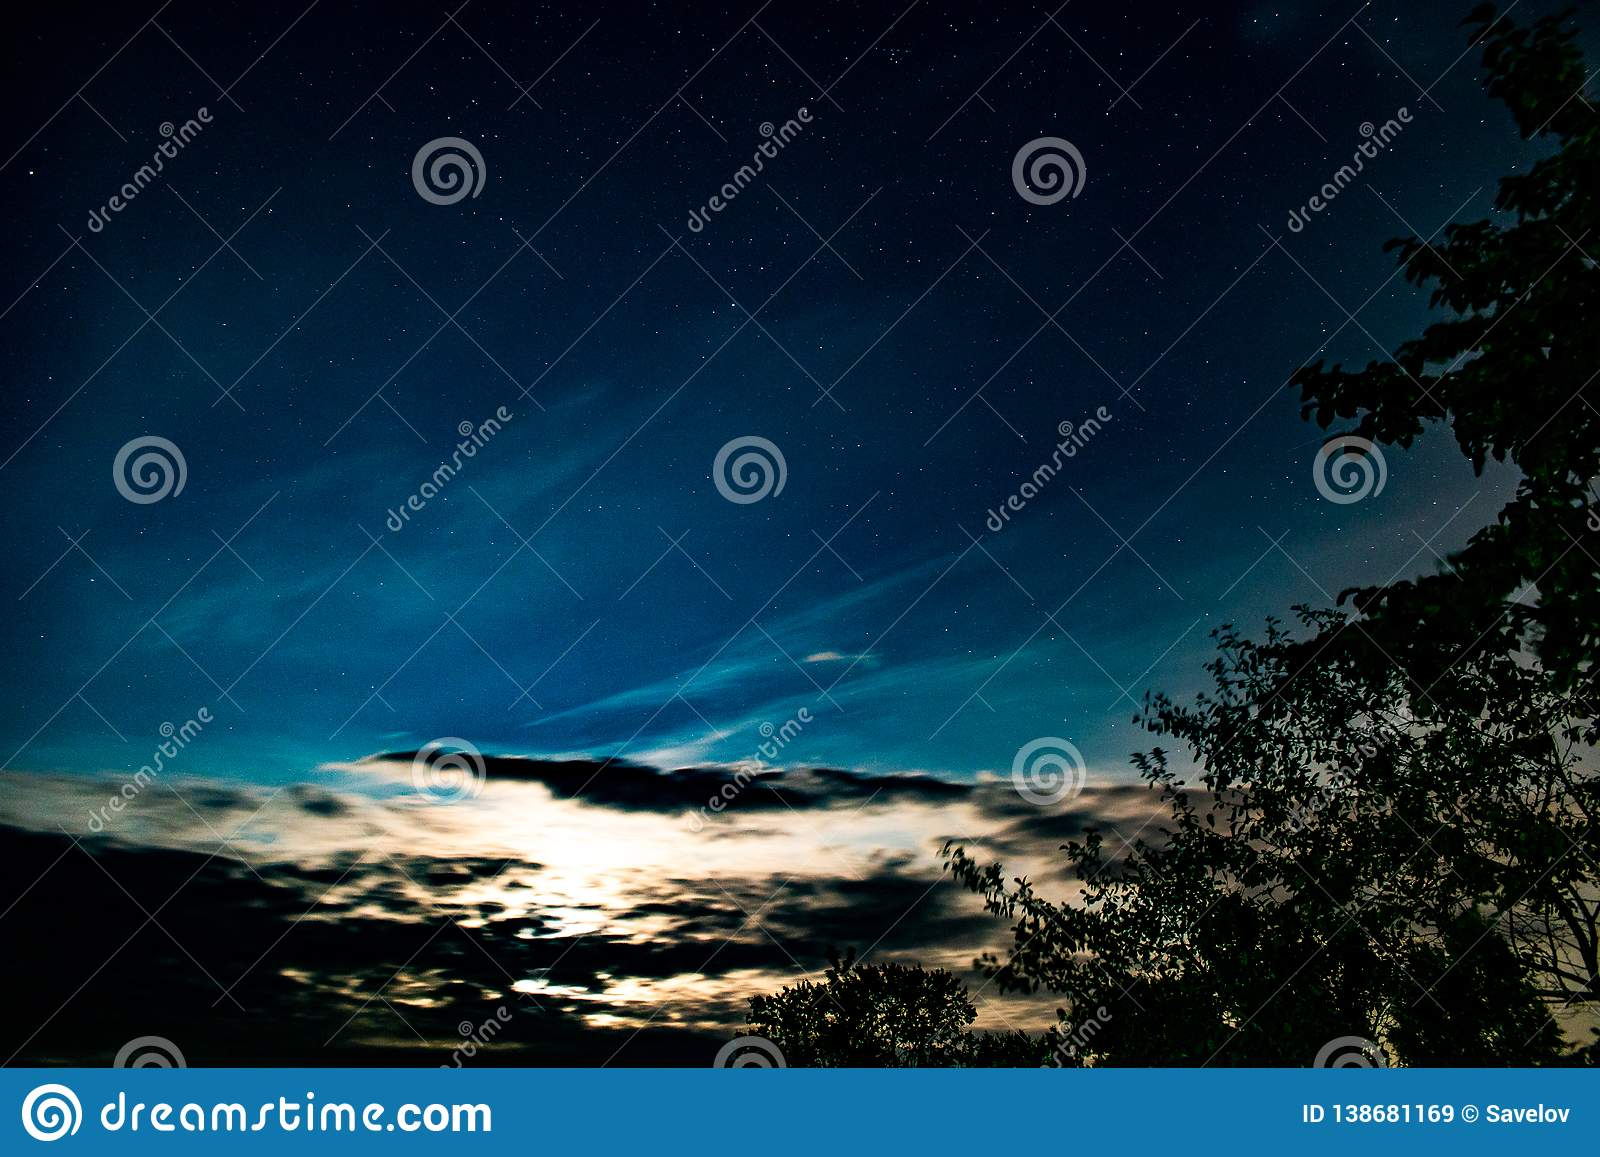 Background with clouds, stars and the light of the rising sun